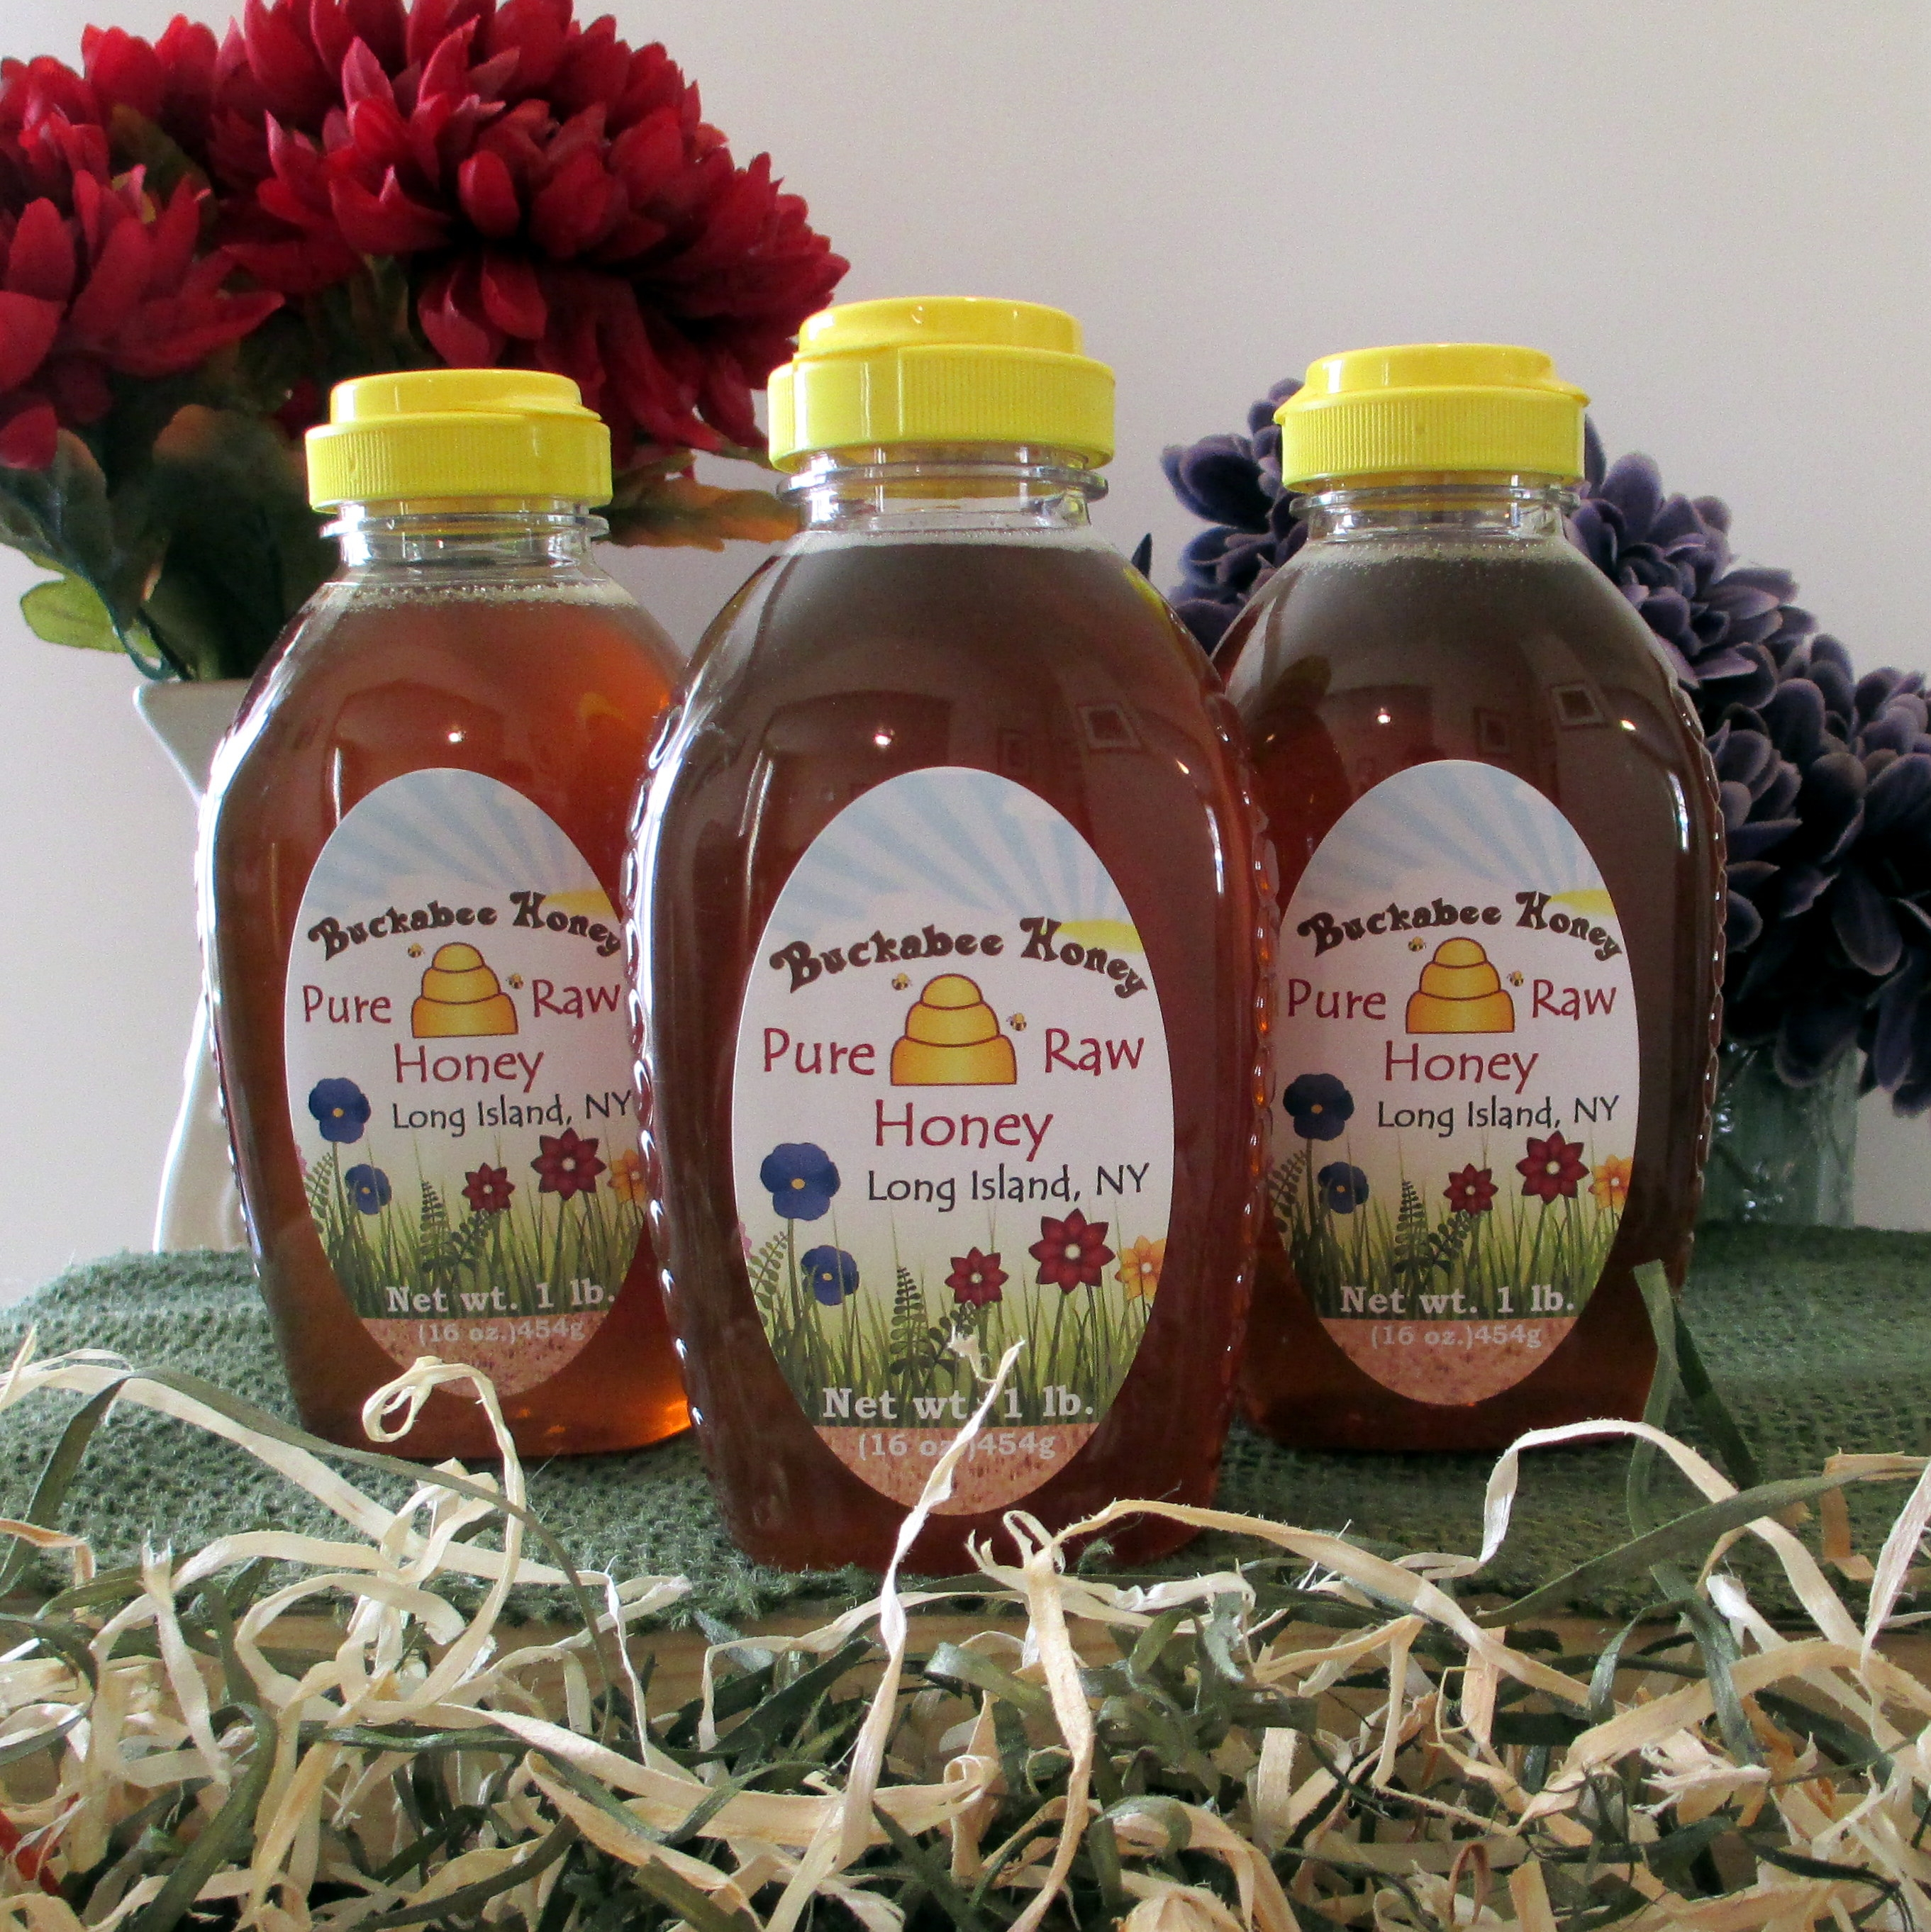 1 lb. honey bottle (Local Long Island Pure Raw Wildflower Honey)